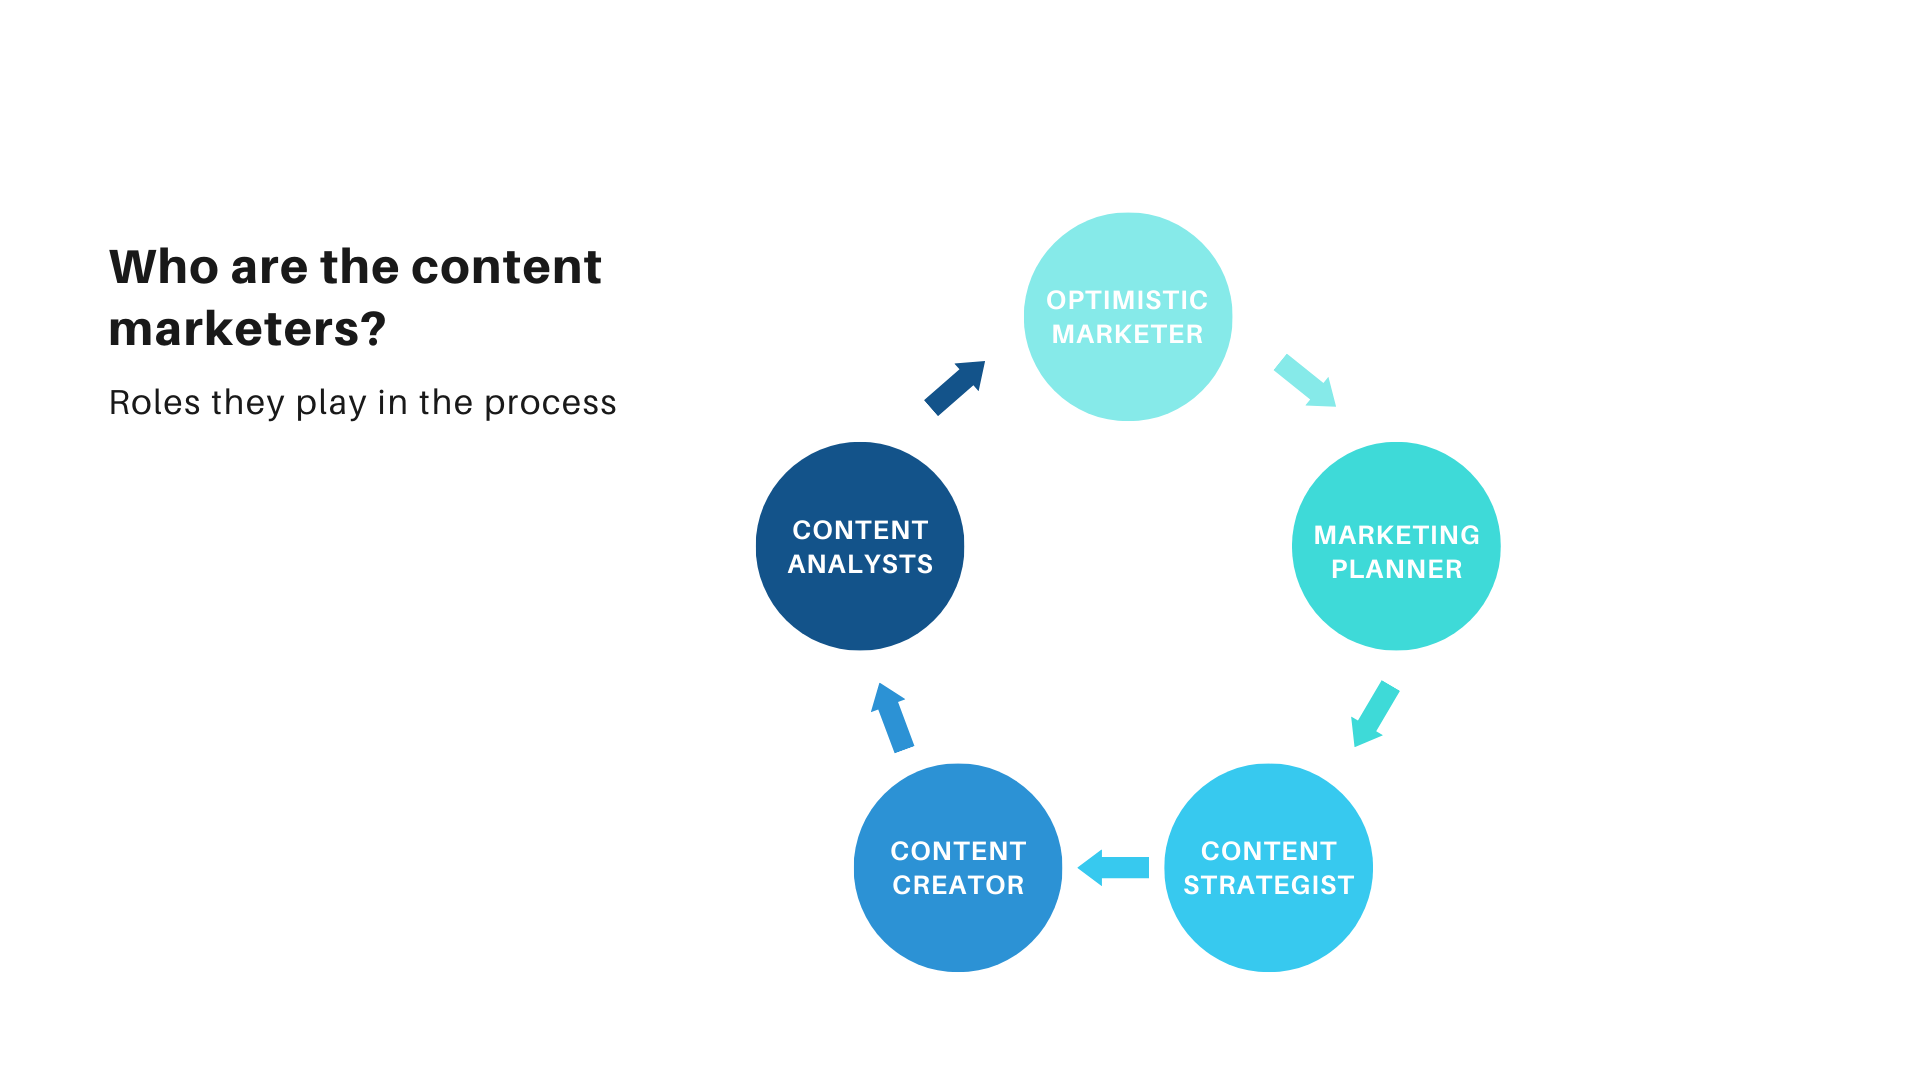 Role of content marketer, who are content marketers